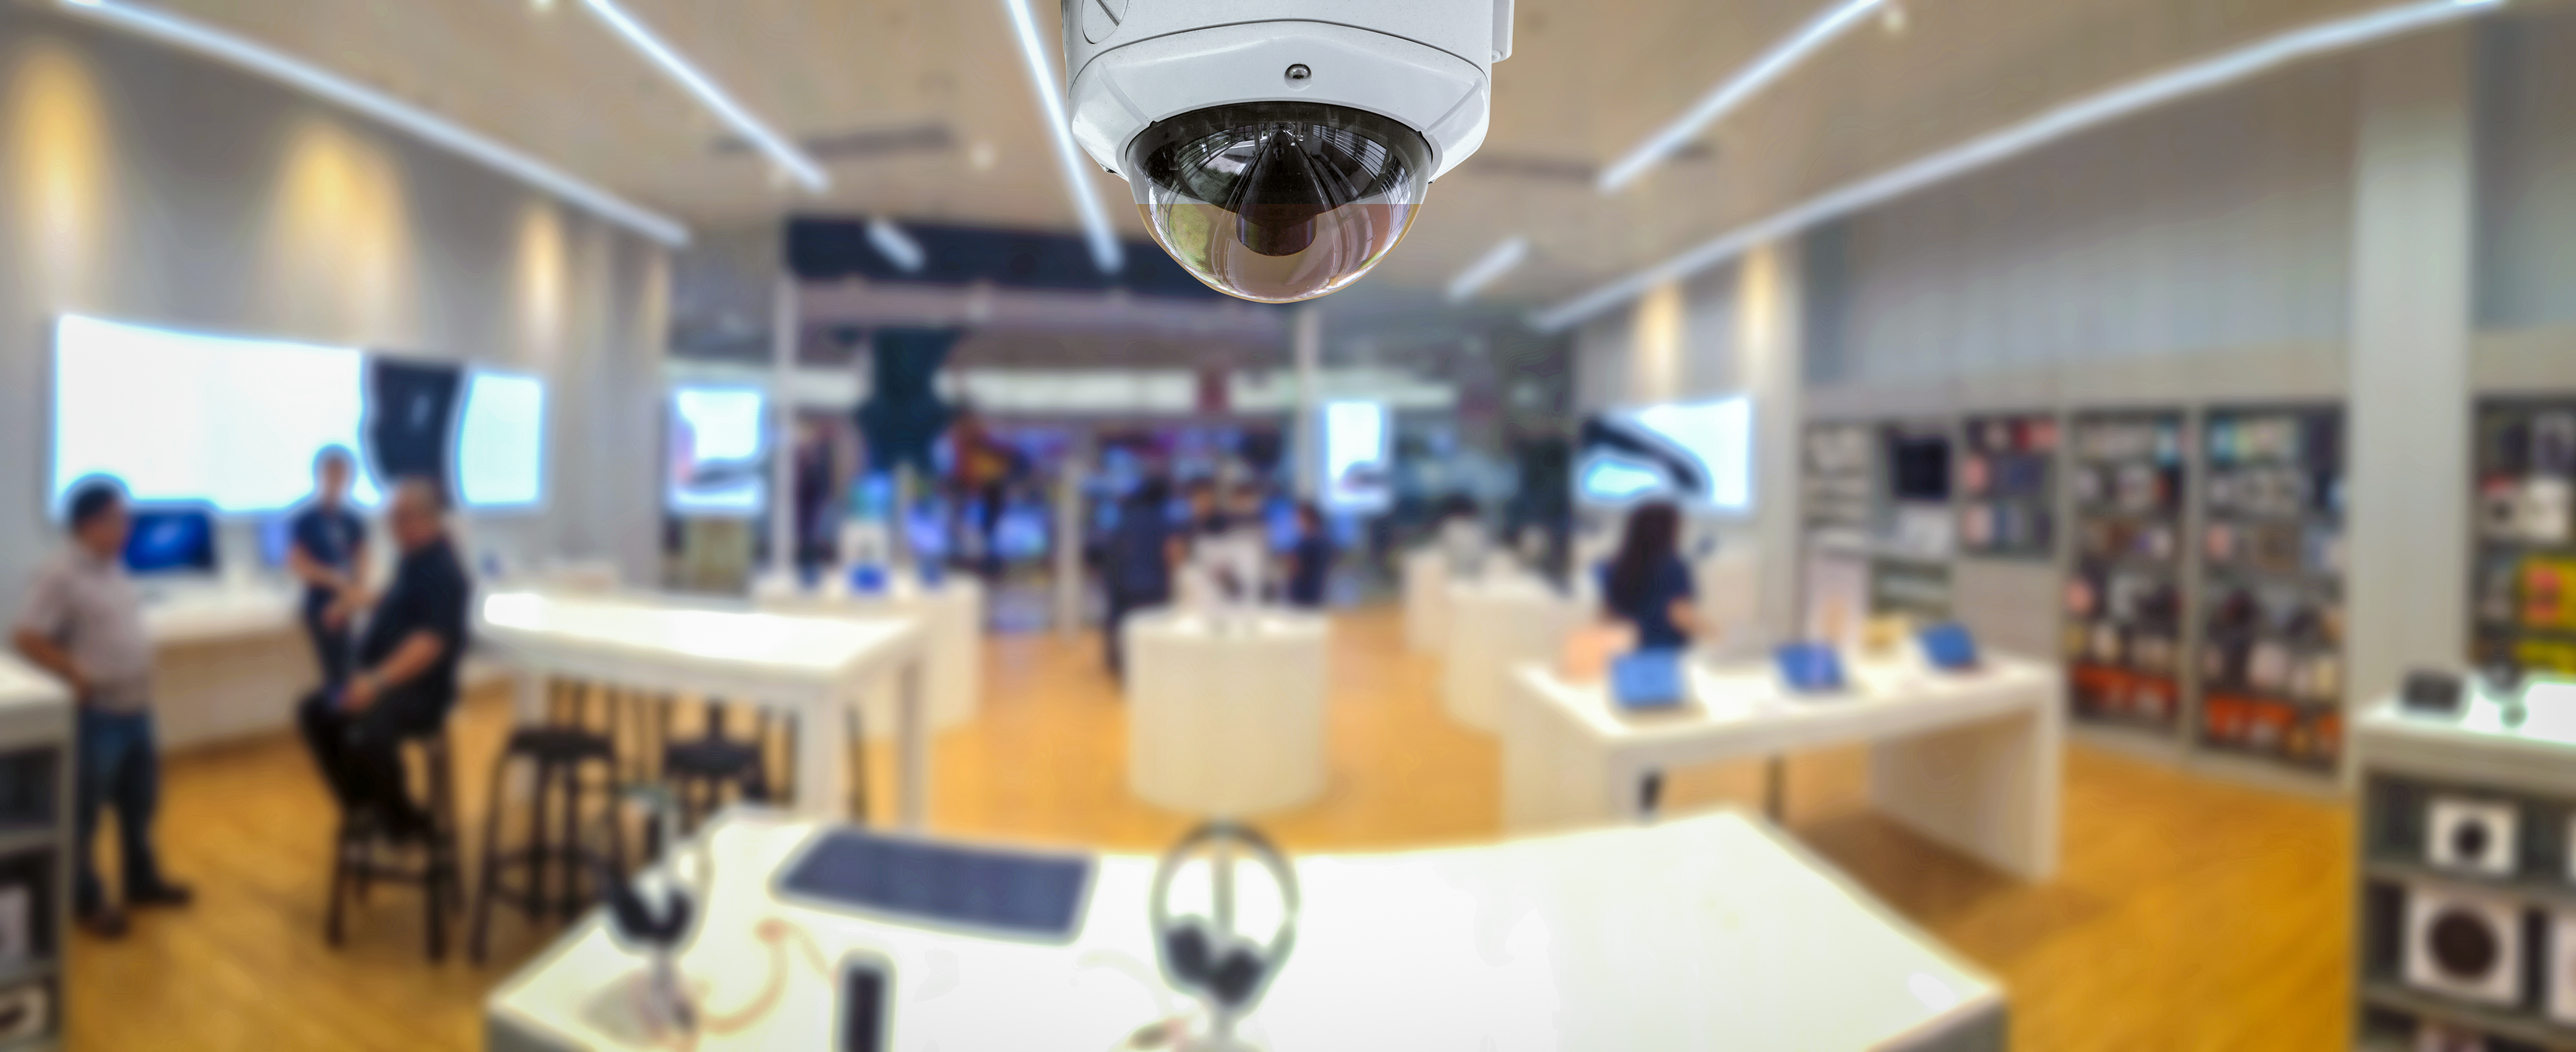 New business security camera